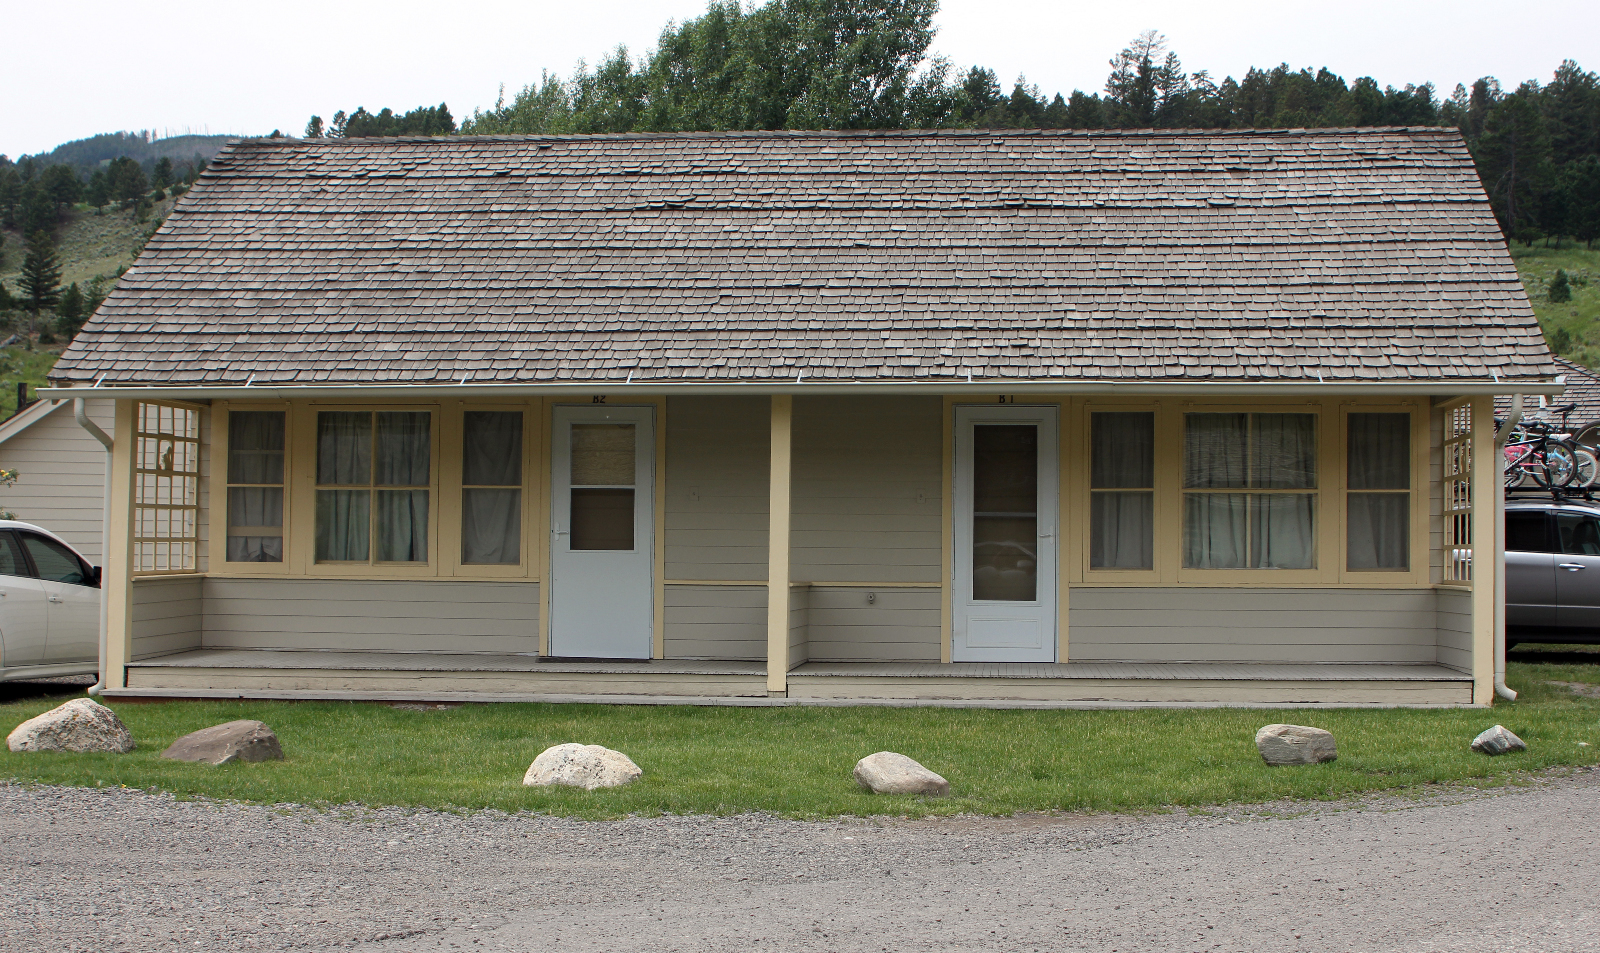 Mammoth hot springs hotel and cabins yellowstone for Mammoth hot springs hotel cabins